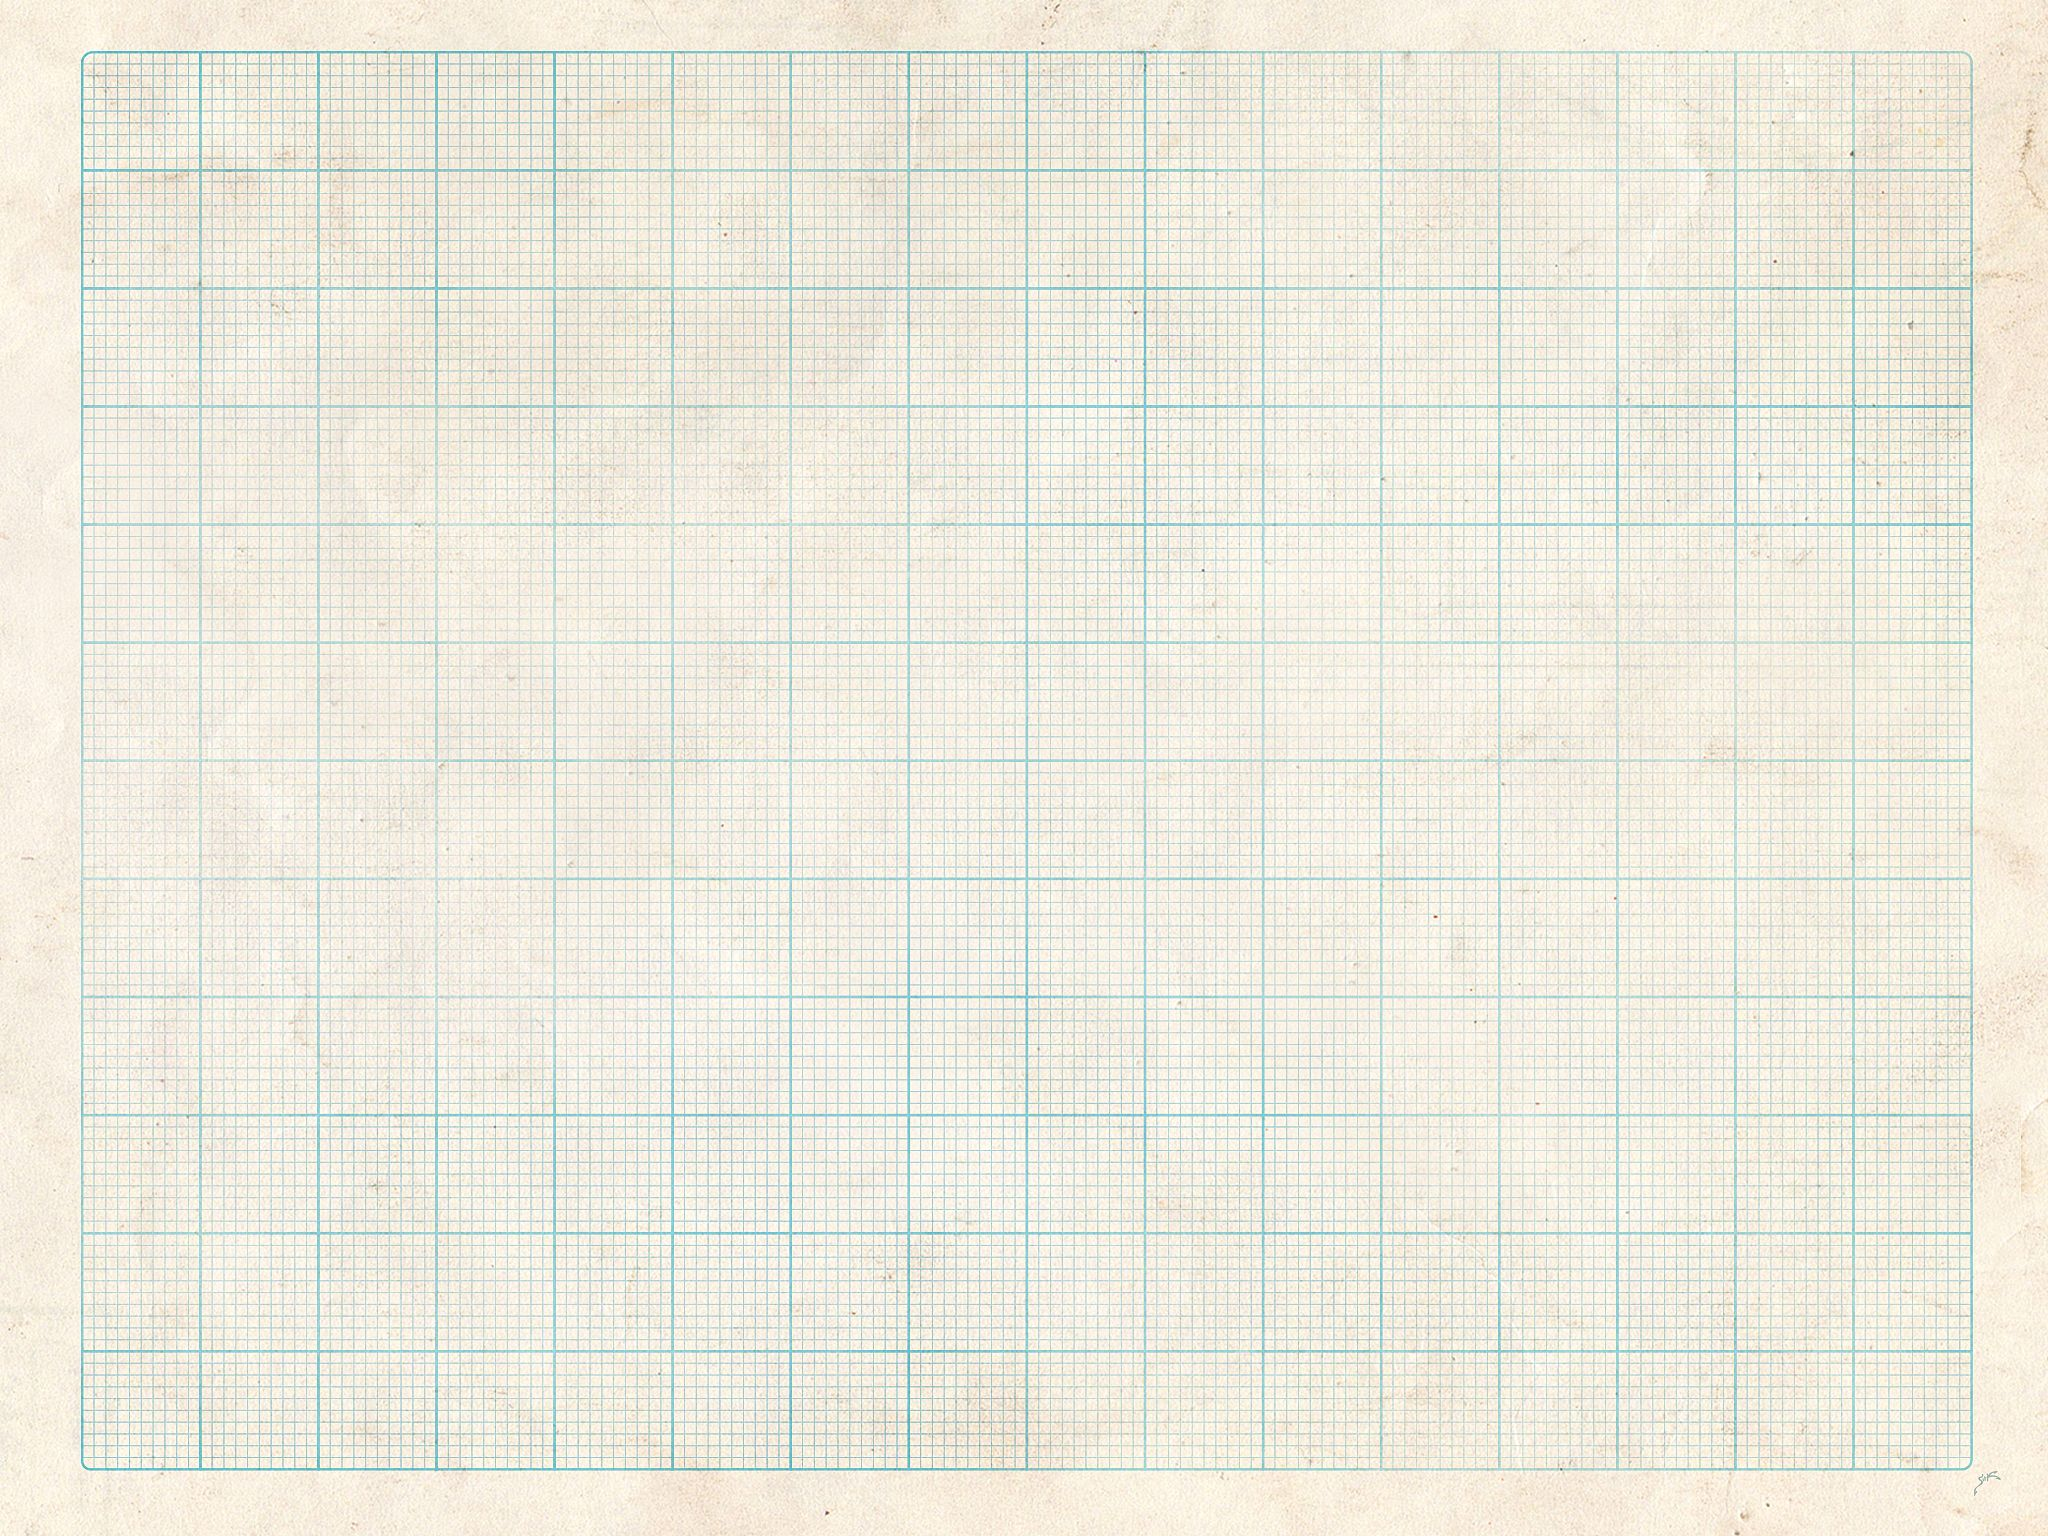 Graph paper for retina ipad noteshelf goodnotes by kostroman graph paper for retina ipad noteshelf goodnotes by kostroman malvernweather Images